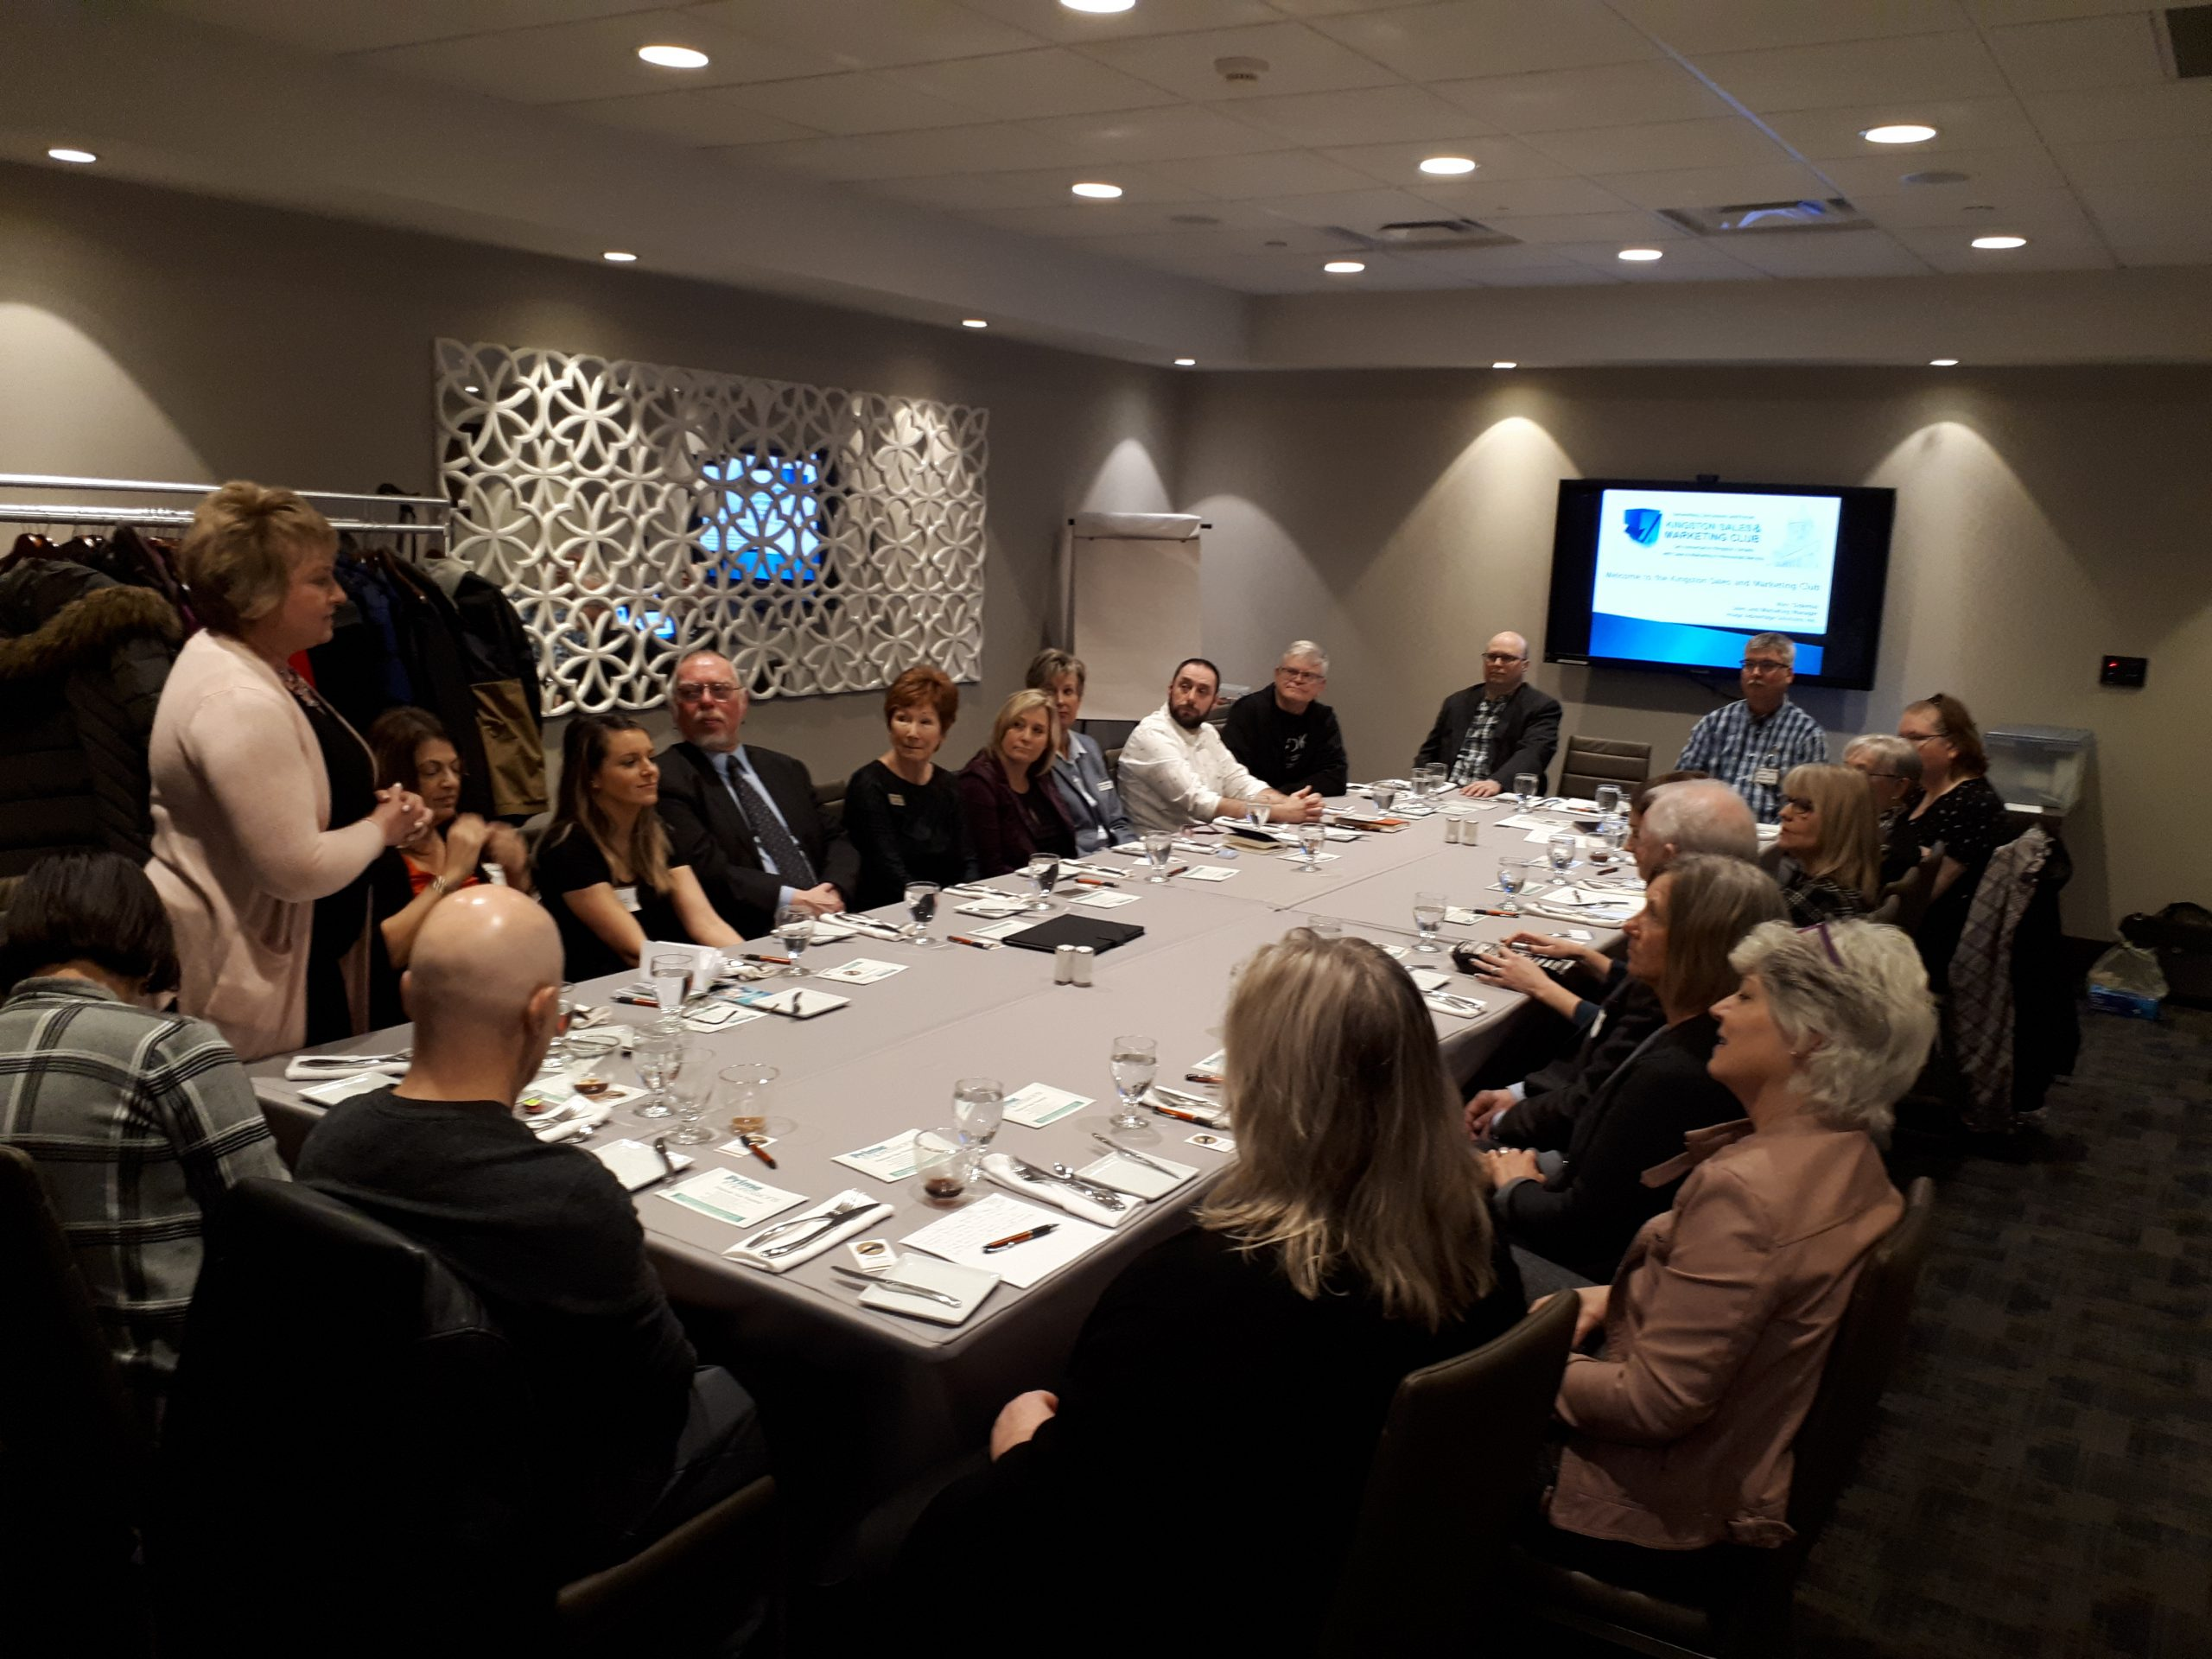 March 2020 Meeting of the Kingston Sales and Marketing Club